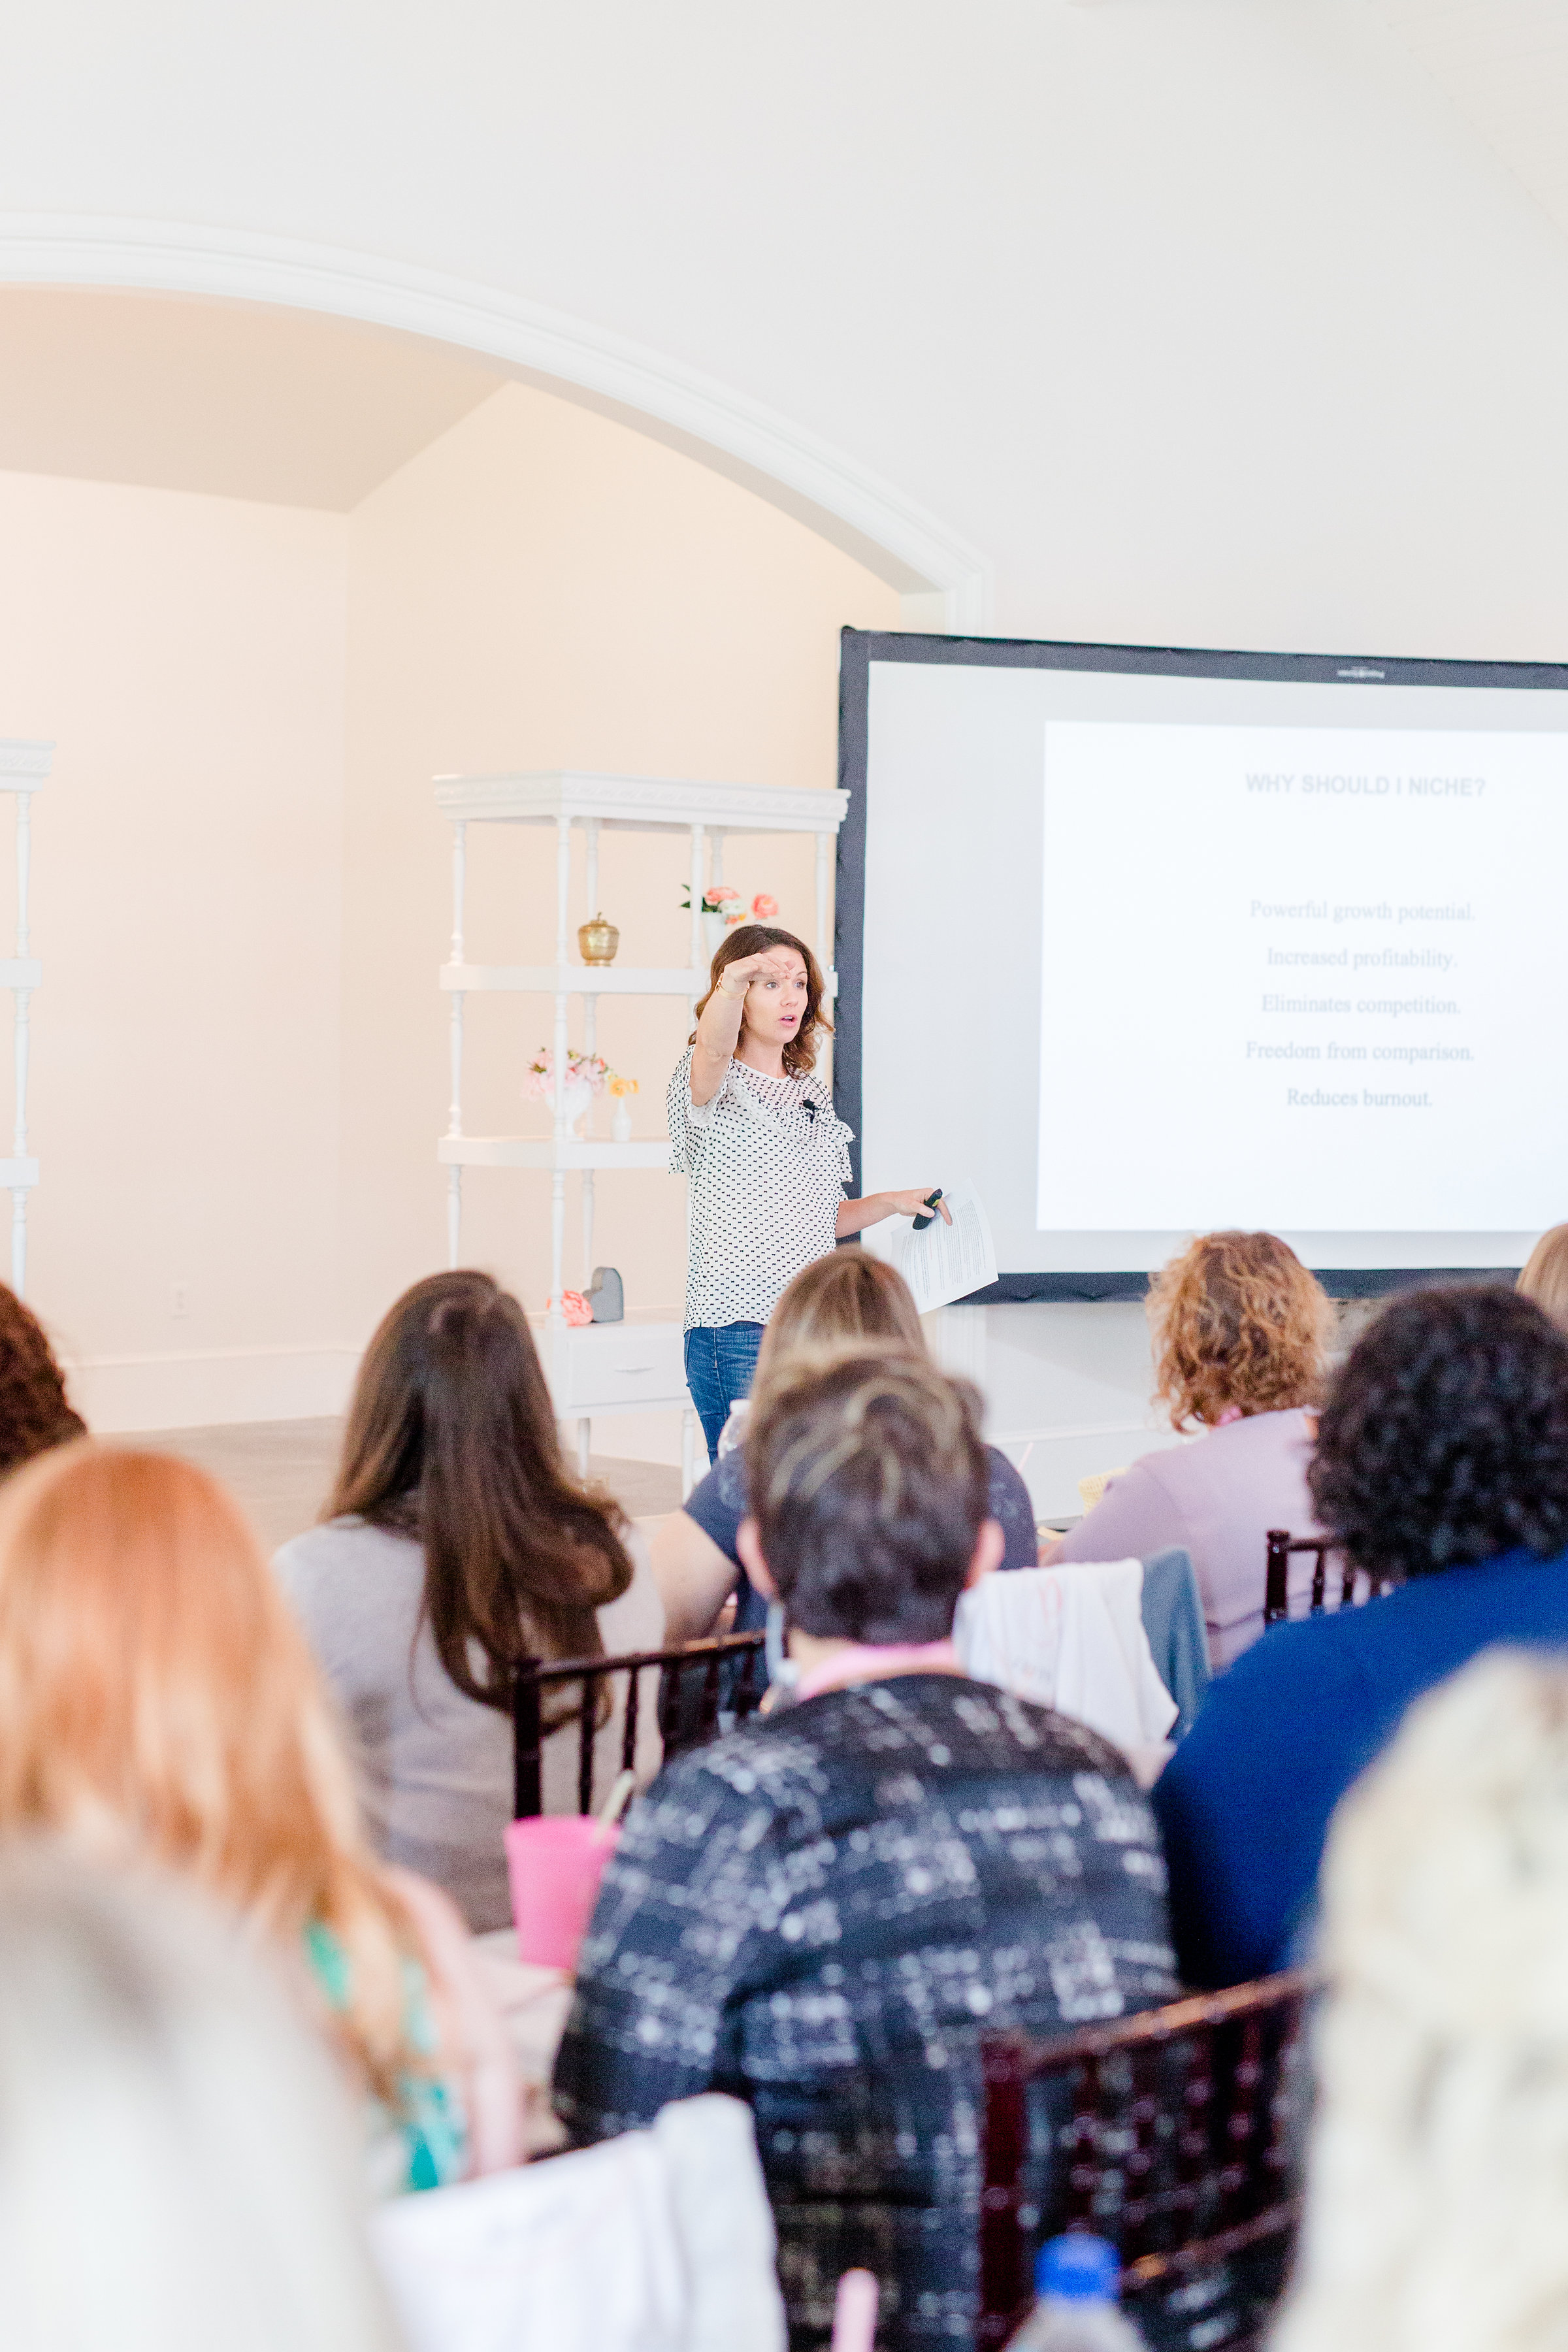 Merrimon-Wynne-Creative-At-Heart-Conference-Raleigh-North-Carolina-Holly-Felts-Photography-10.jpg